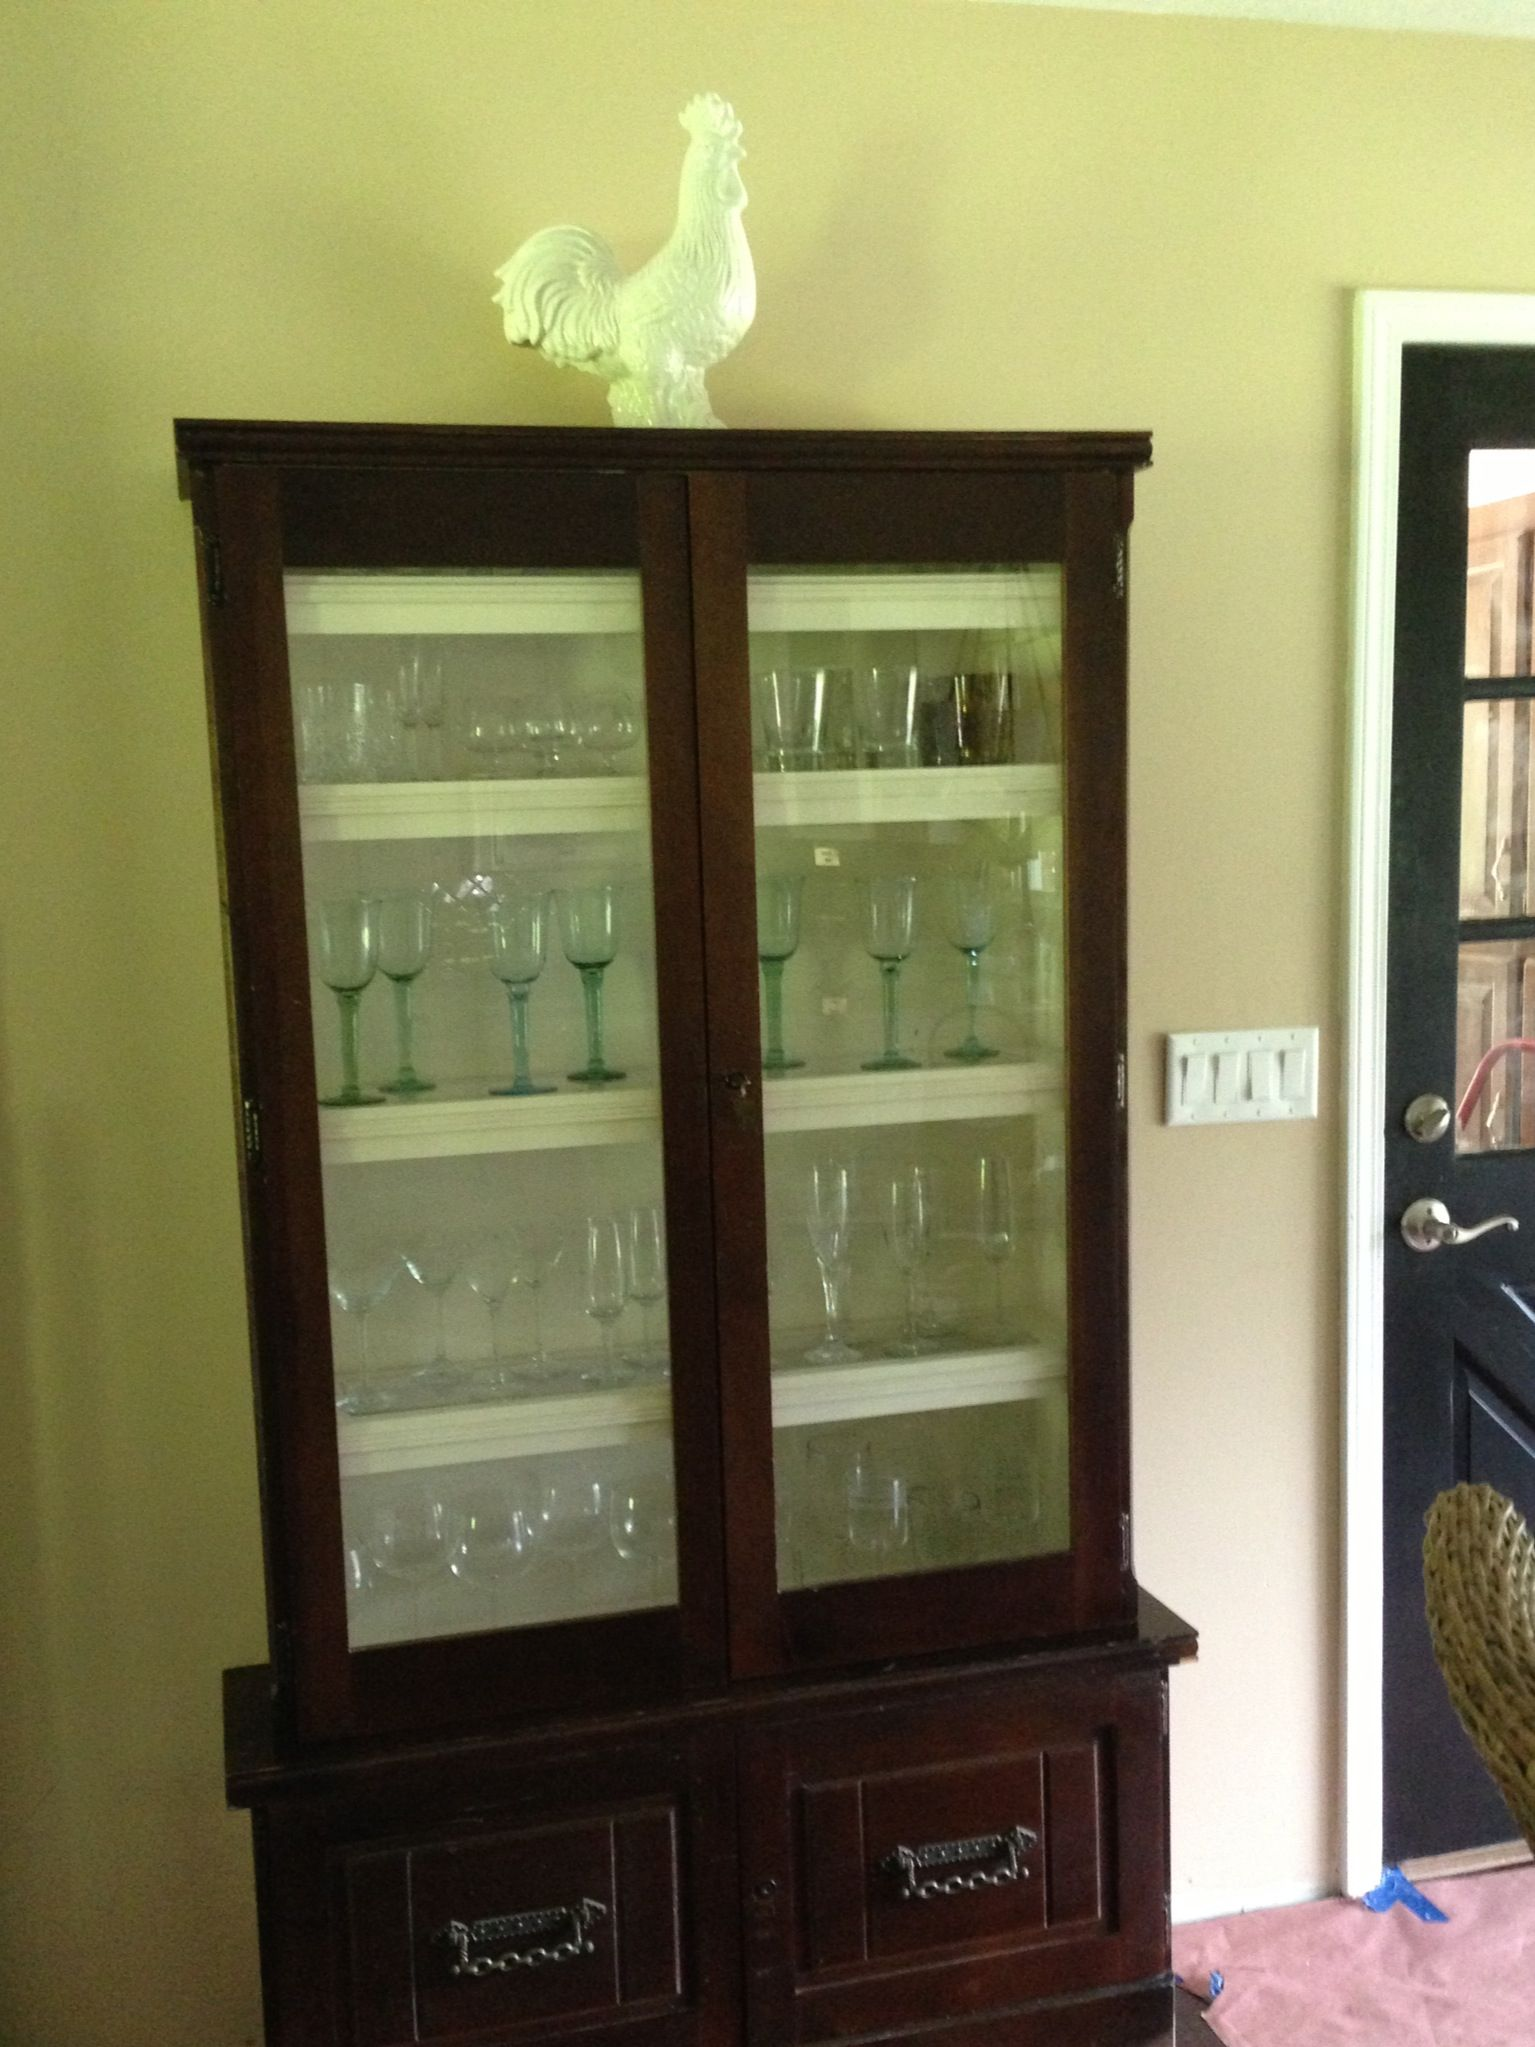 Refurbished Gun Cabinet Into Wine Glass Cabinet 50 At A Yard Sale Home Pinterest Yard